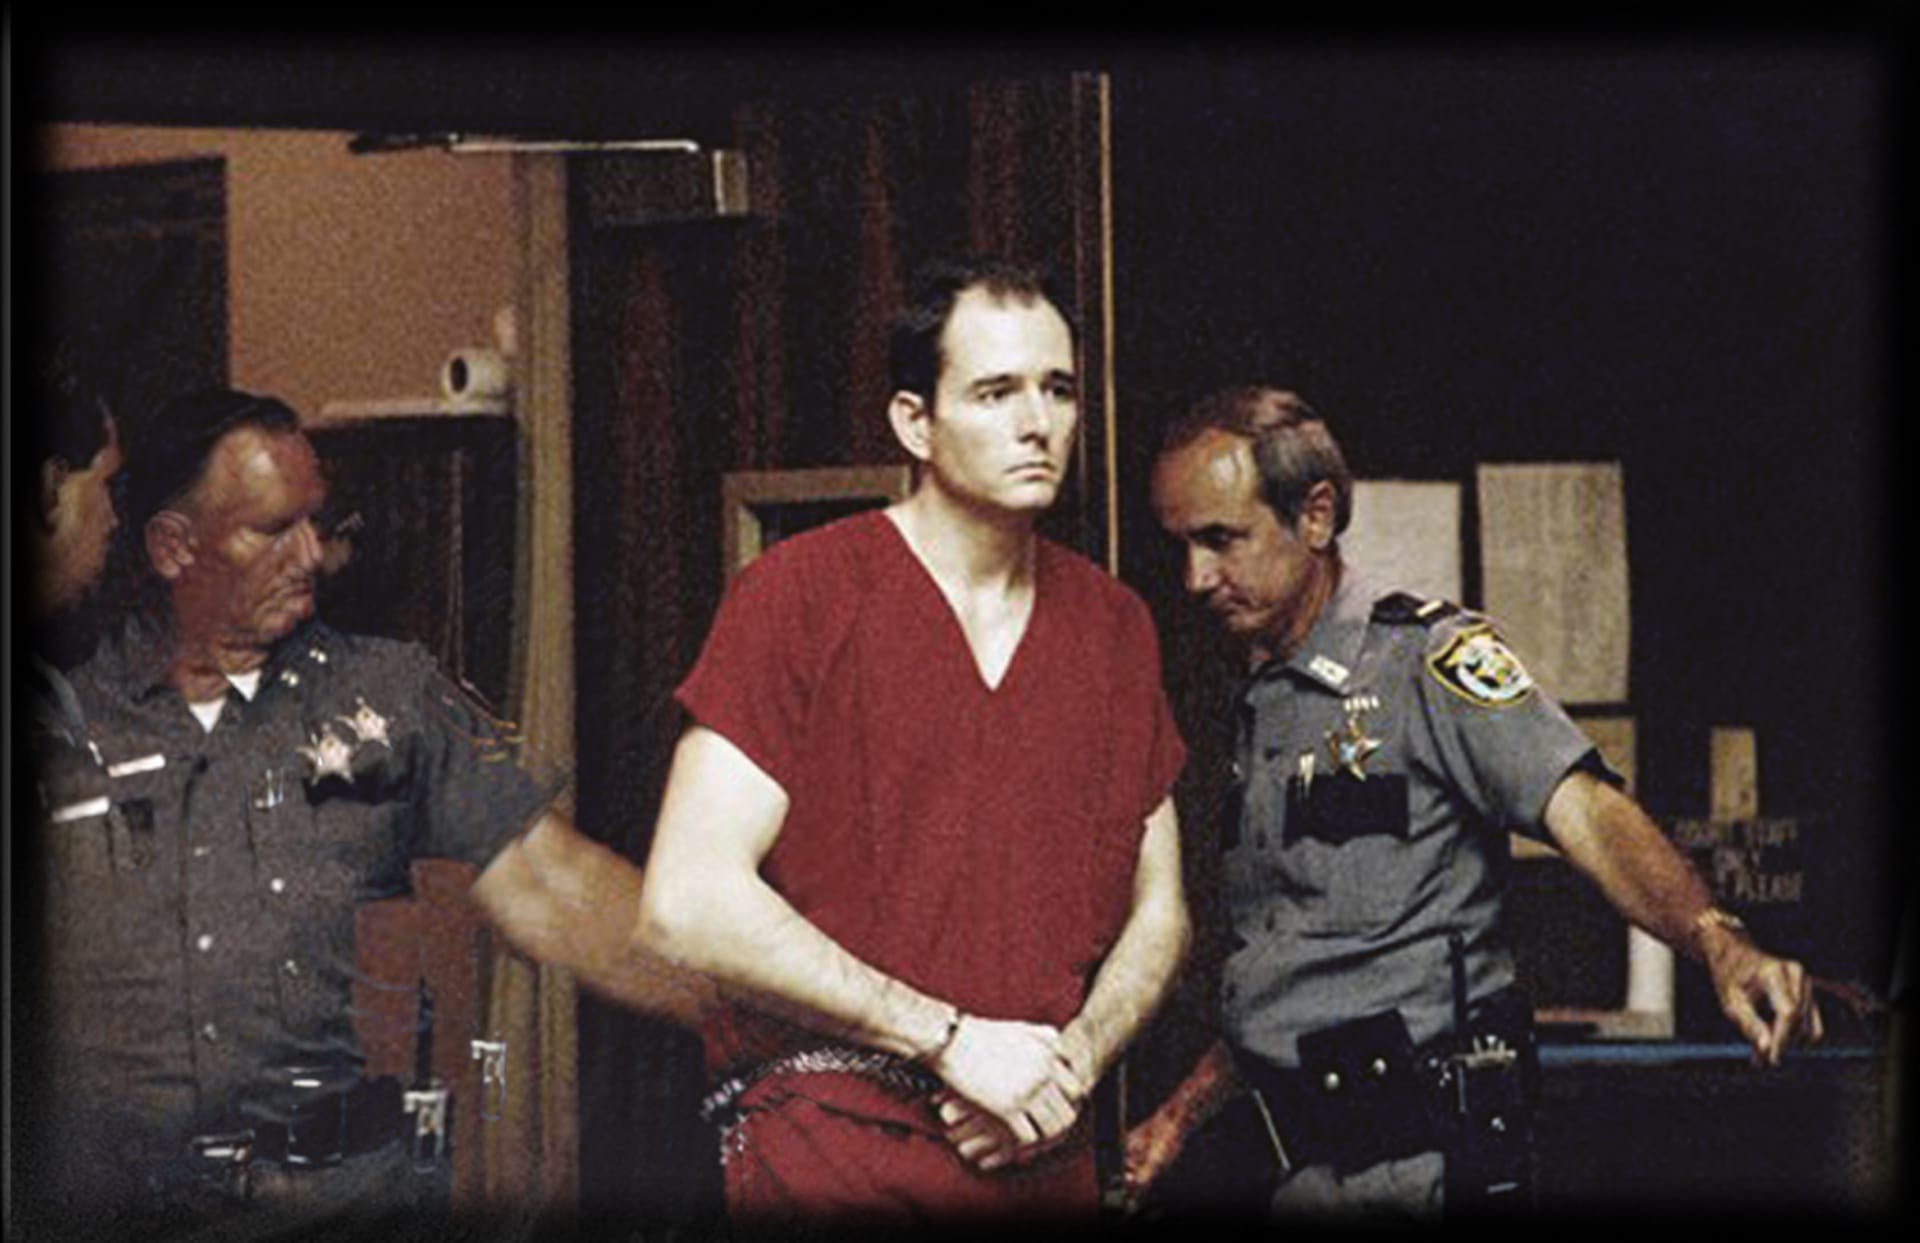 The True Story Behind the Horrific Murder Spree That